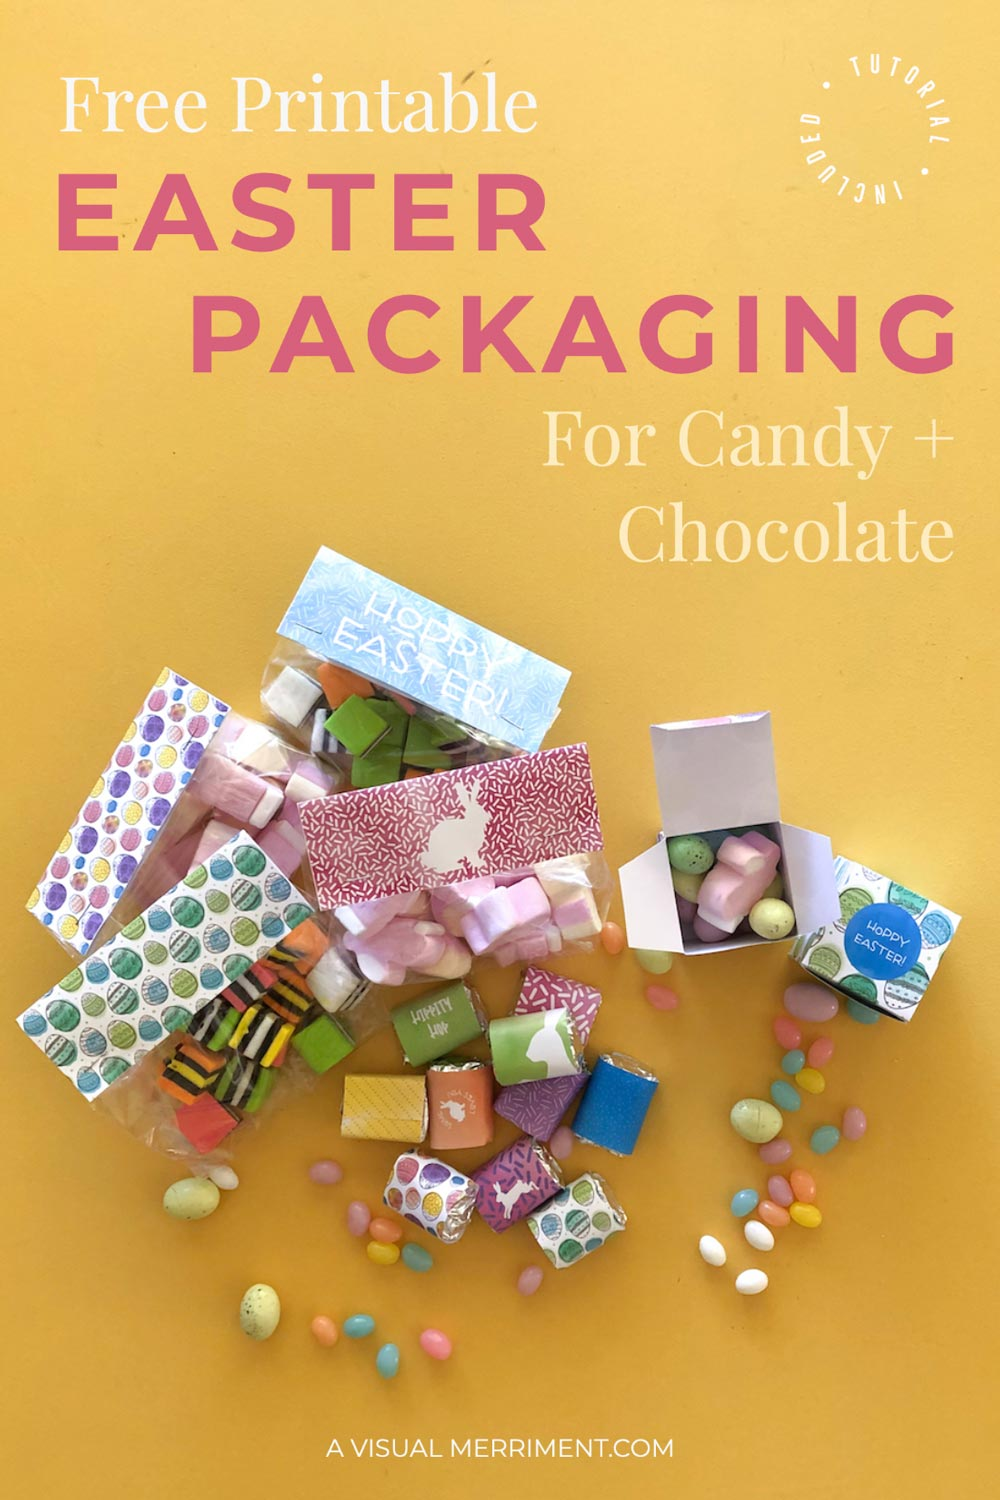 Colourful Easter printable packages with lollies and chocolate eggs